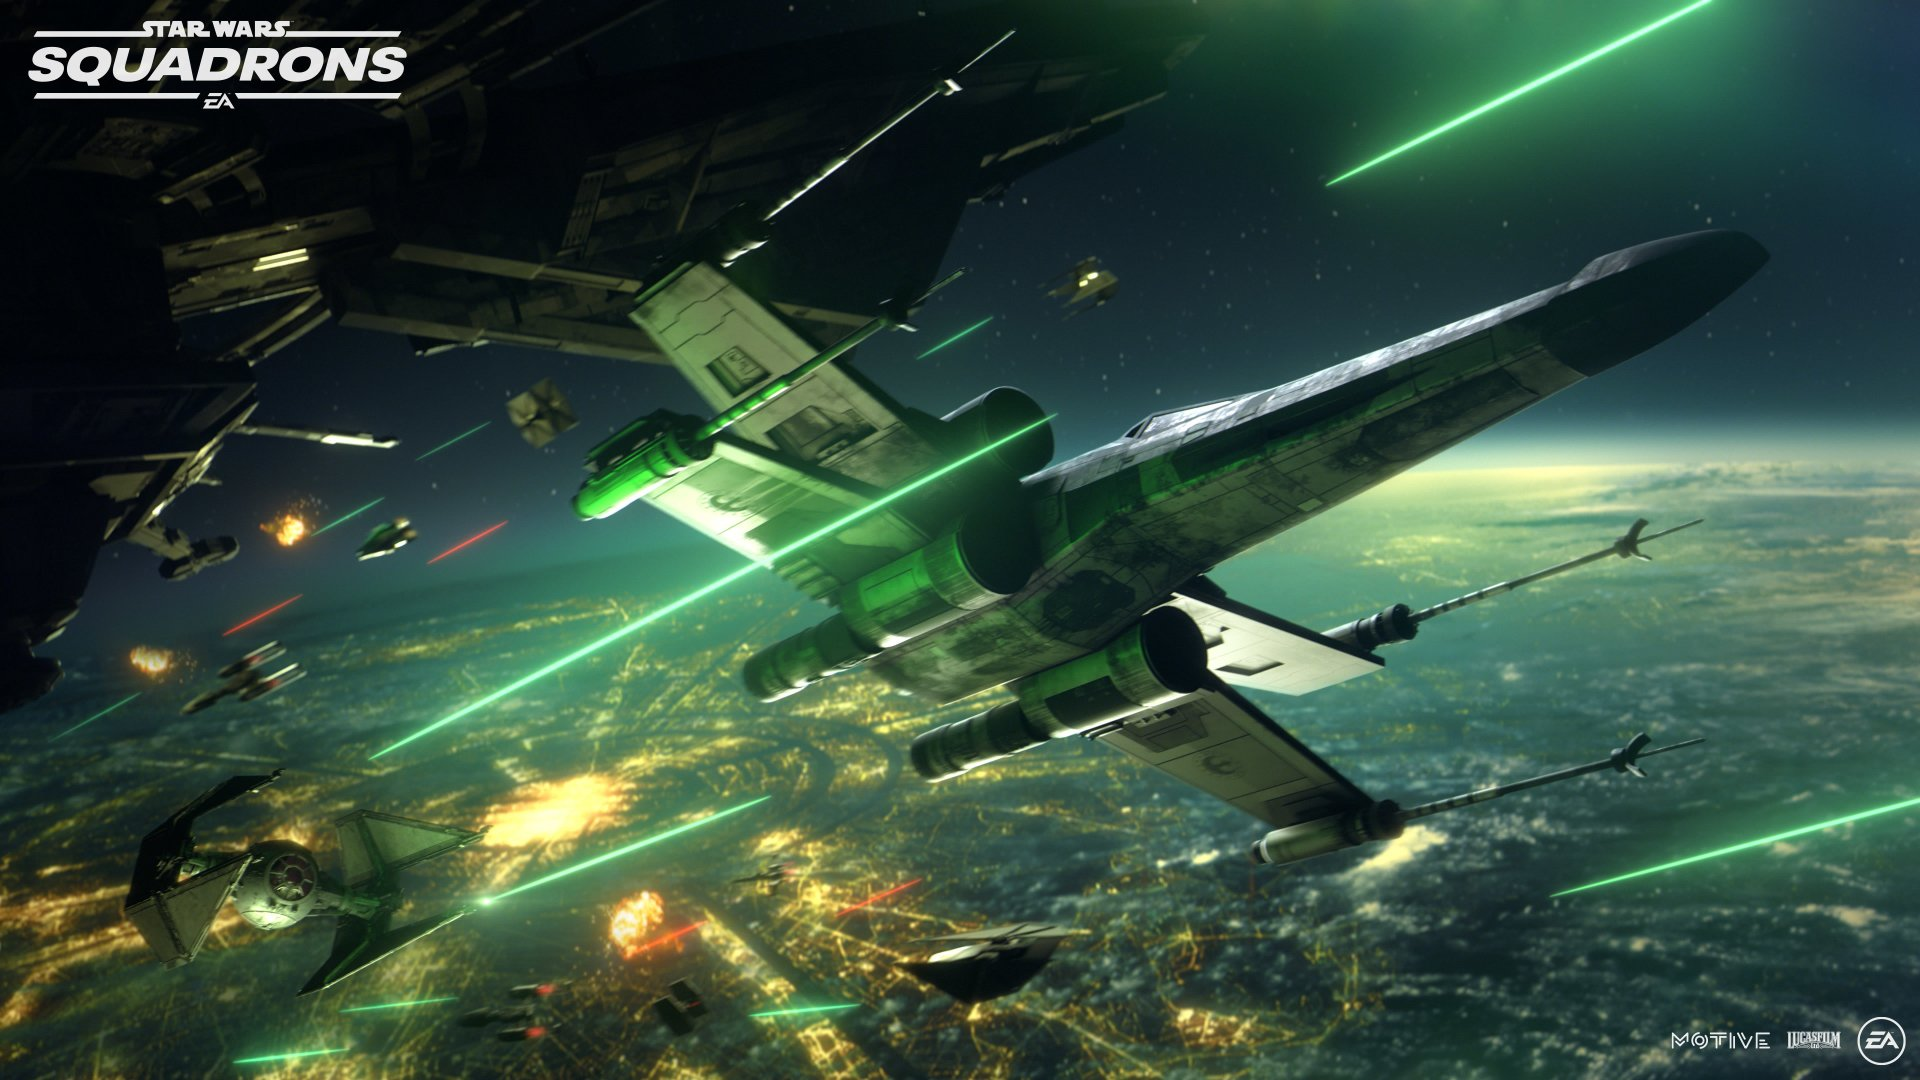 10 Star Wars Squadrons Hd Wallpapers Background Images Wallpaper star wars squadrons 2021 game